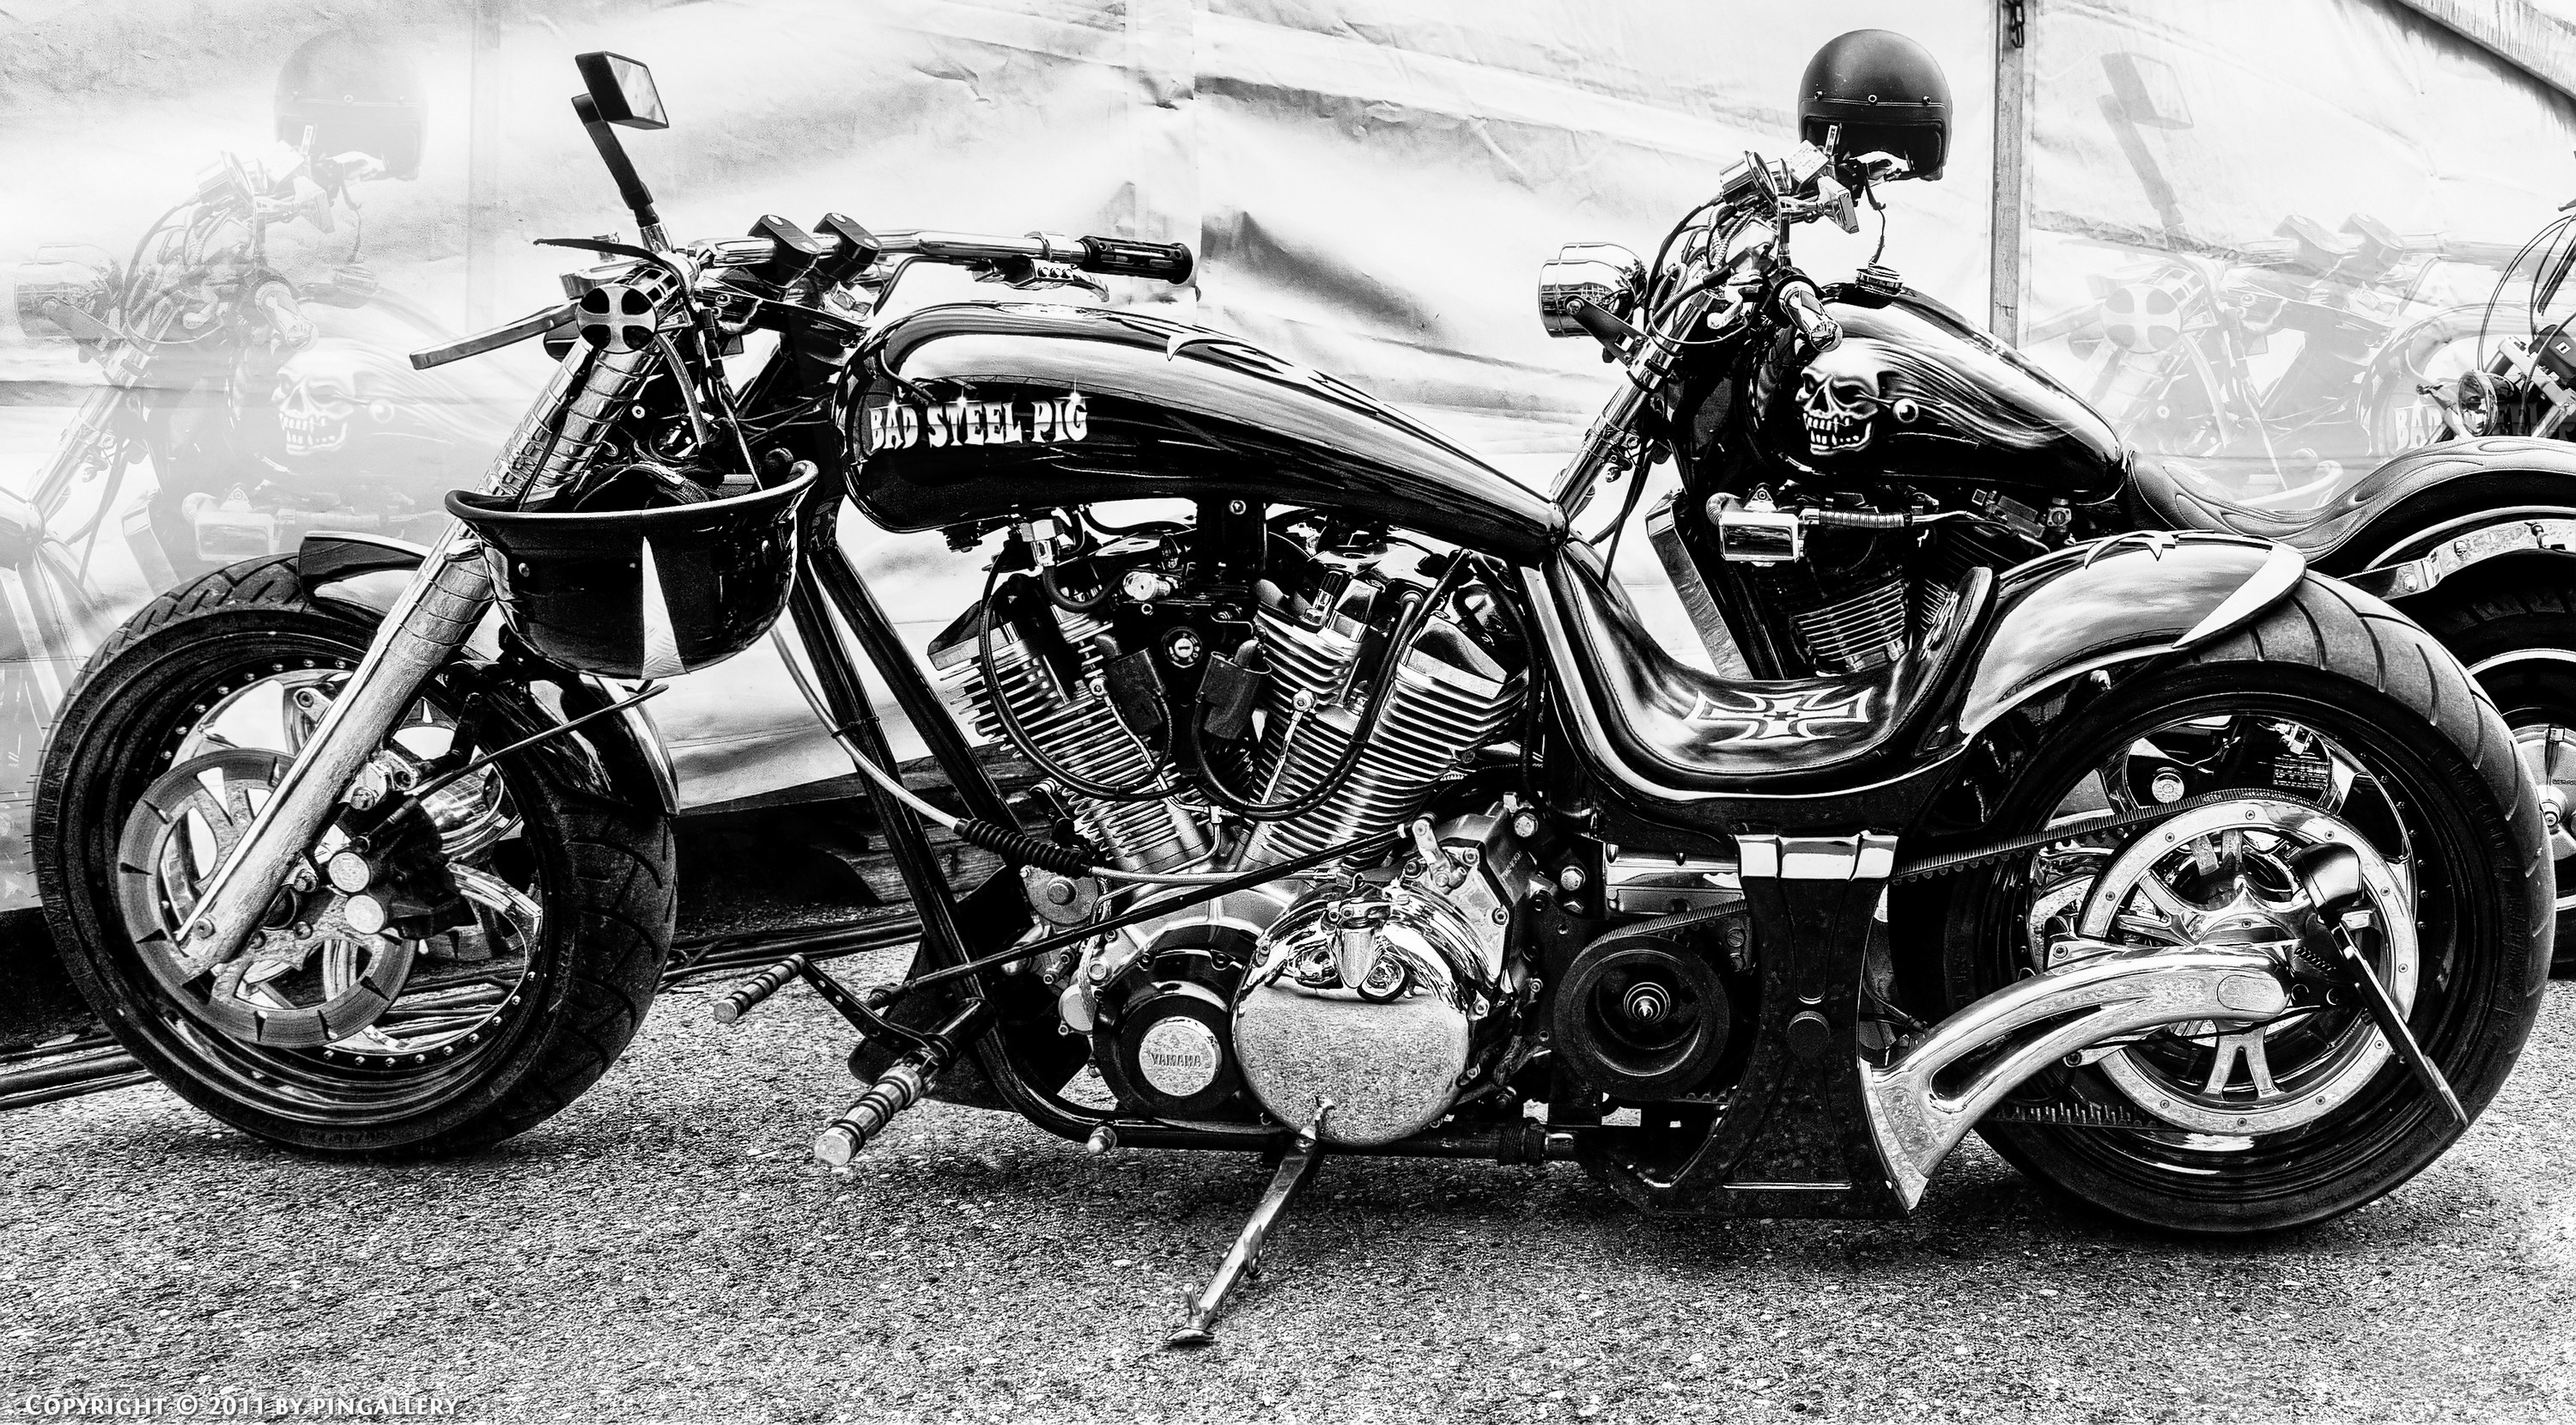 3000x1659 2560x1440 Motorcycles Desktop Wallpapers Harley Davidson Dyna Fat. »